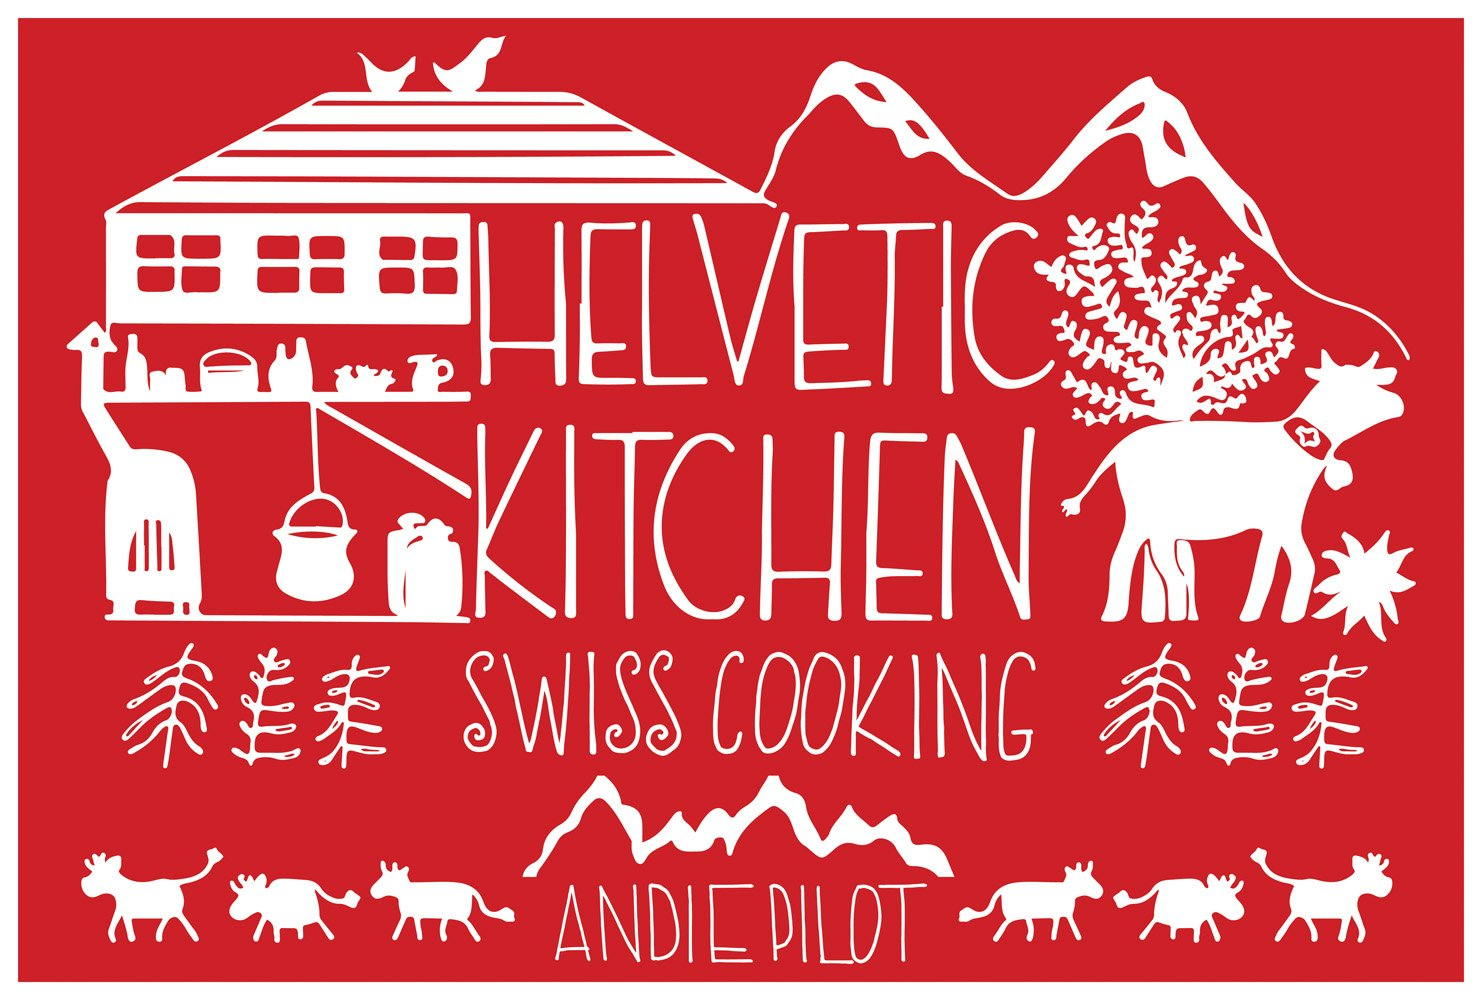 Helvetic Kitchen  Swiss Cooking